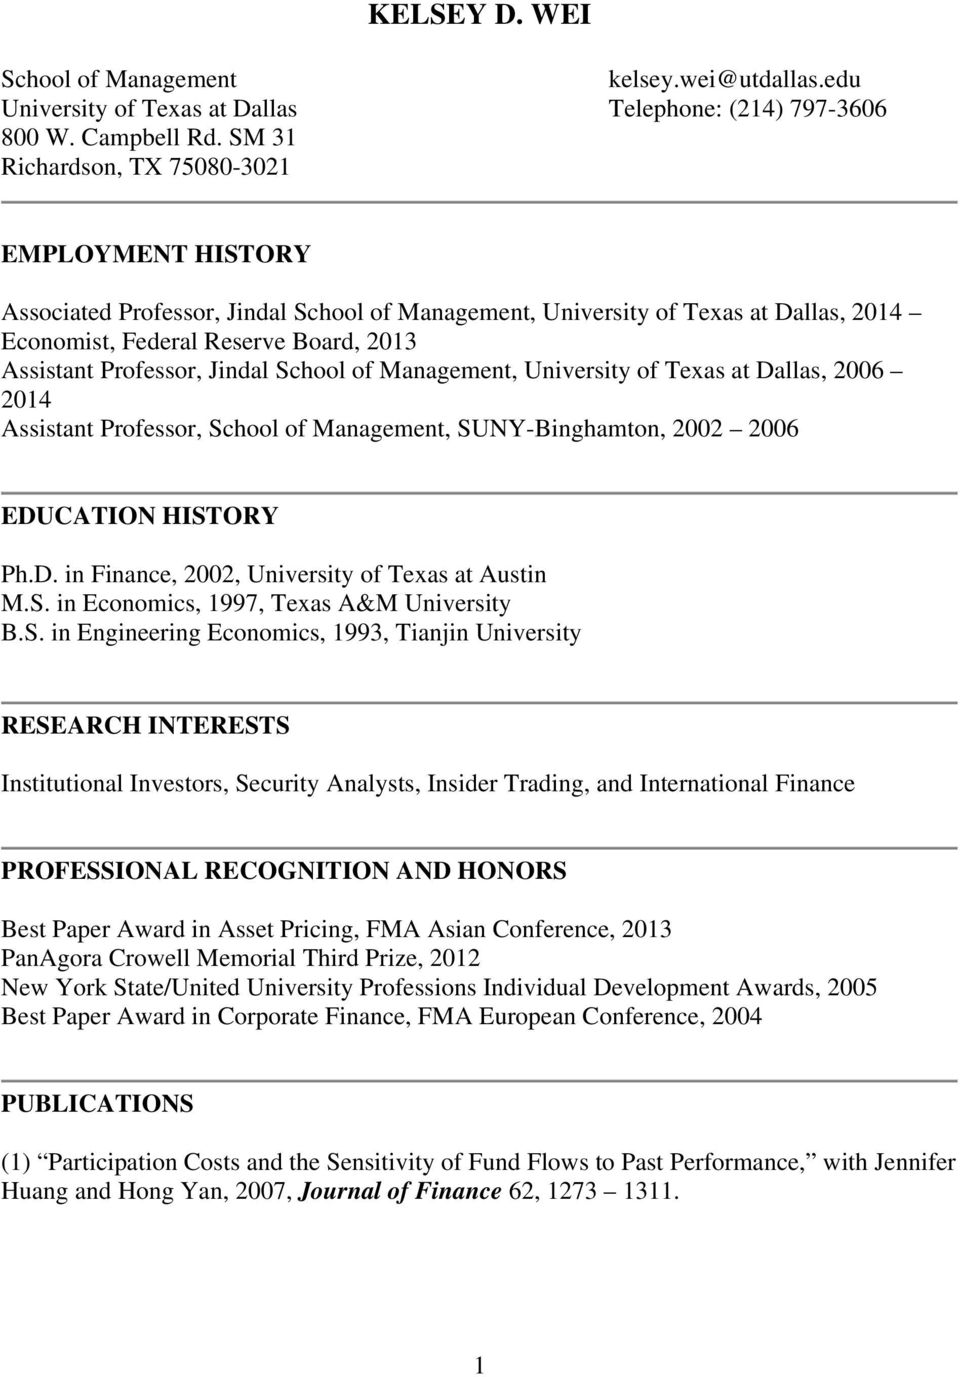 Jindal School of Management, University of Texas at Dallas, 2006 2014 Assistant Professor, School of Management, SUNY-Binghamton, 2002 2006 EDUCATION HISTORY Ph.D. in Finance, 2002, University of Texas at Austin M.